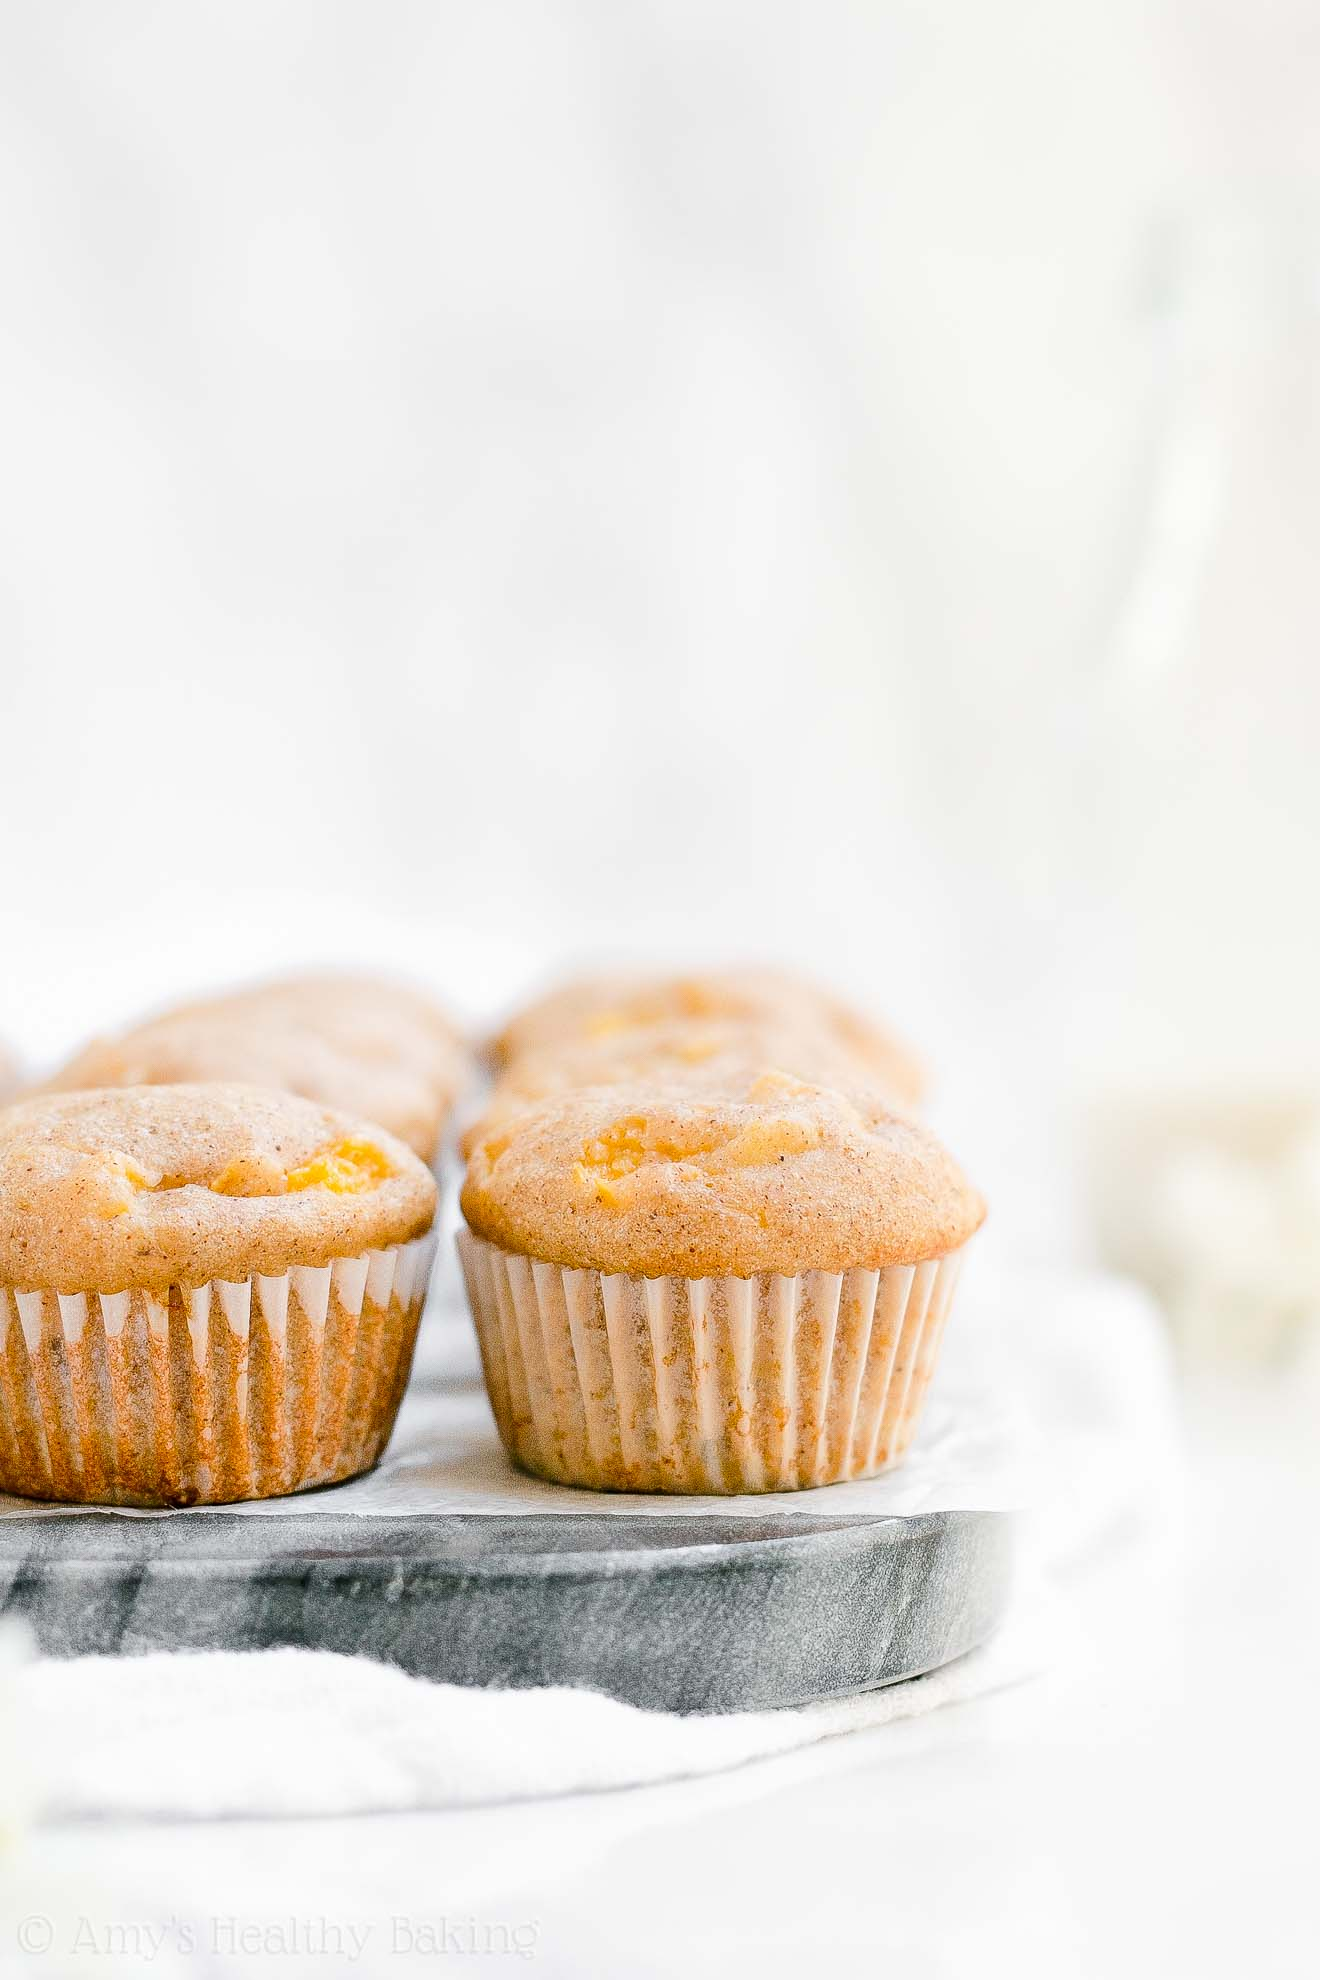 Best Easy Healthy Clean Eating Peach Mini Muffins from scratch